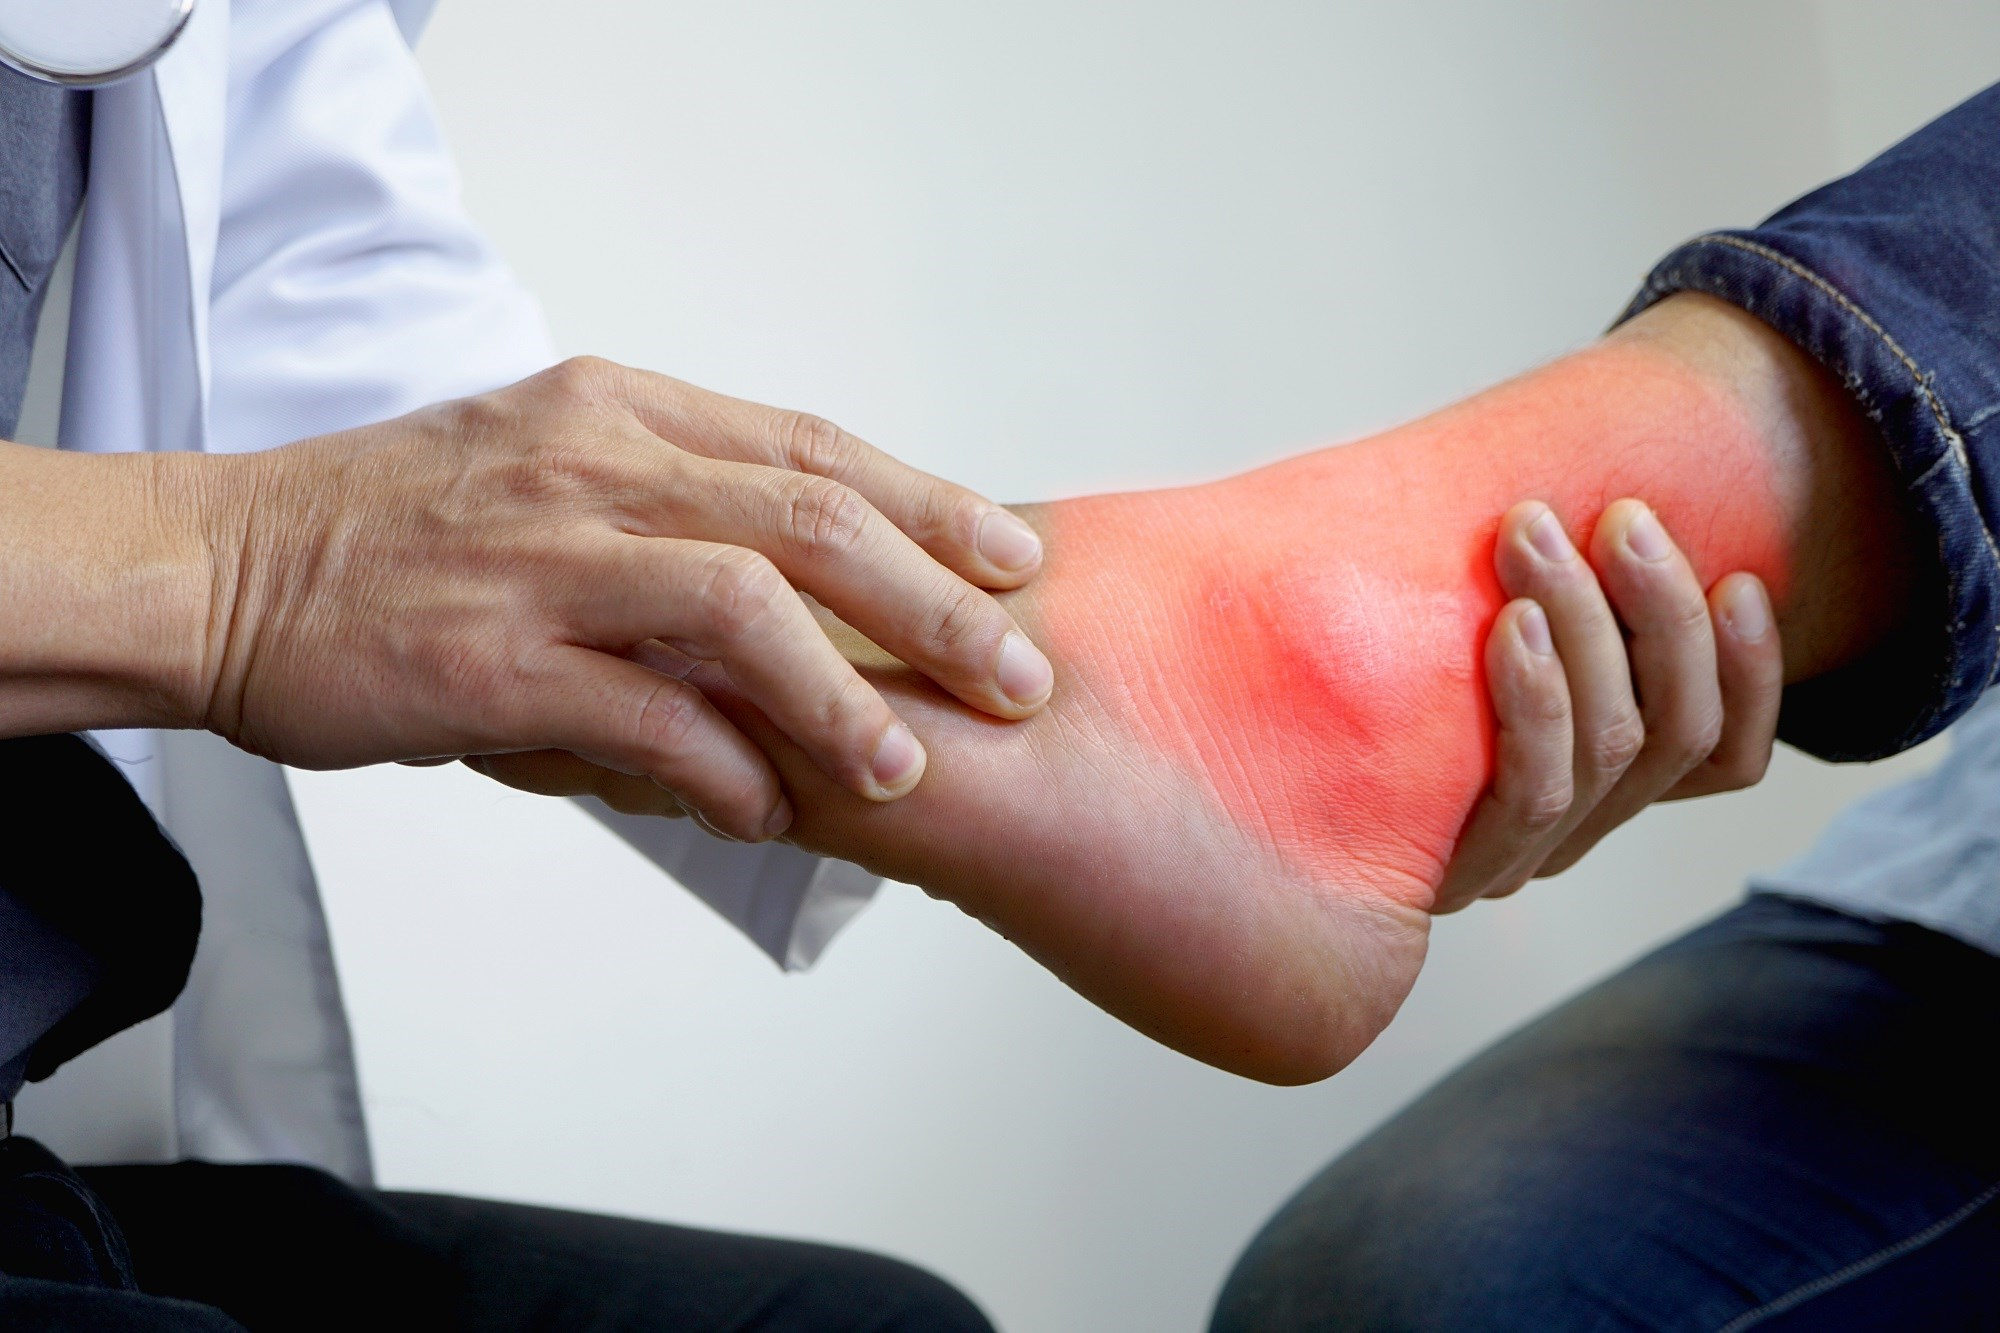 Longer-term studies are needed to support the cost effectiveness and safety of lesinurad in combination with XOI therapy in patients with gout. <i>Image Credit: ISM</i>